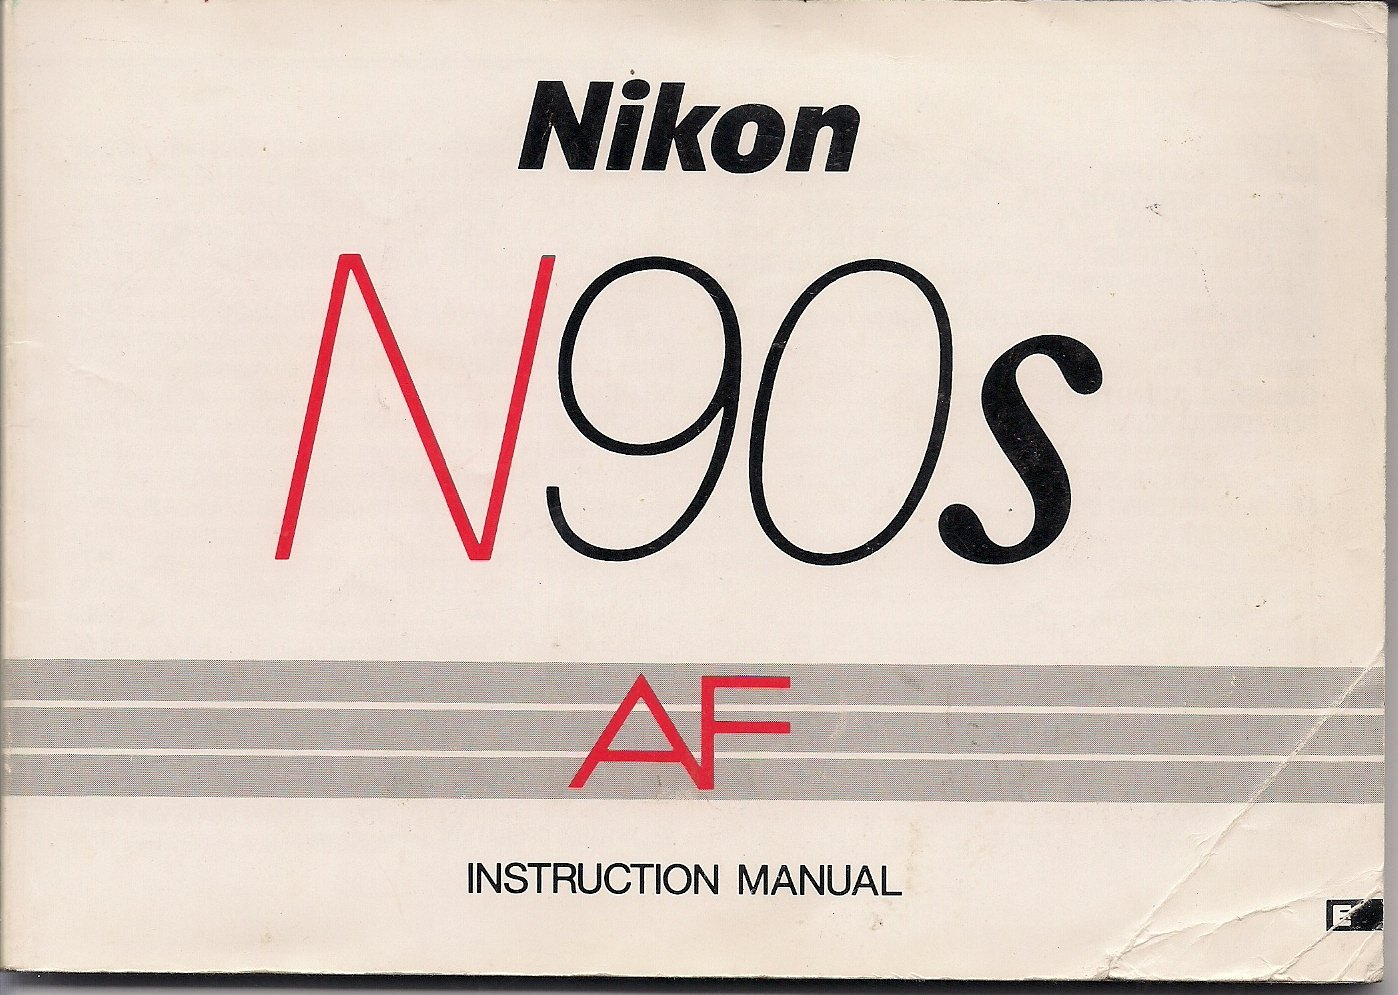 ... Array - nikon n90s af camera instruction manual rh lokalkoeb dk